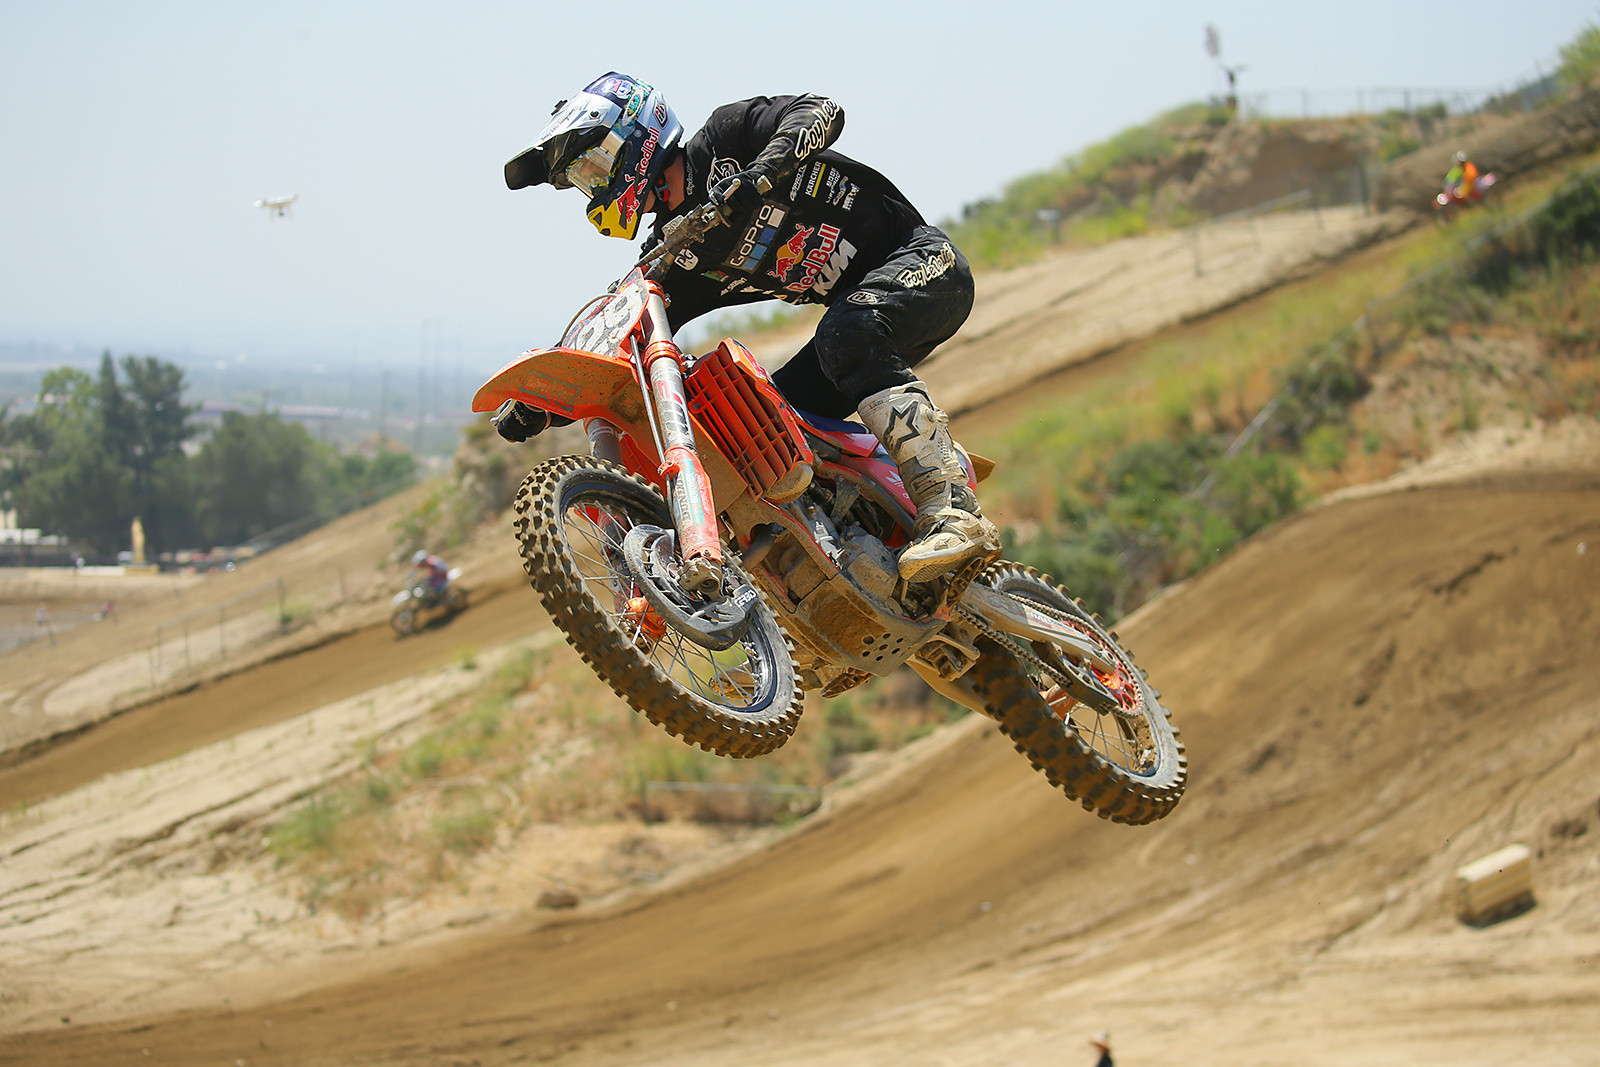 Sean Cantrell will be a new face under the Troy Lee Designs/Red Bull/KTM tent.